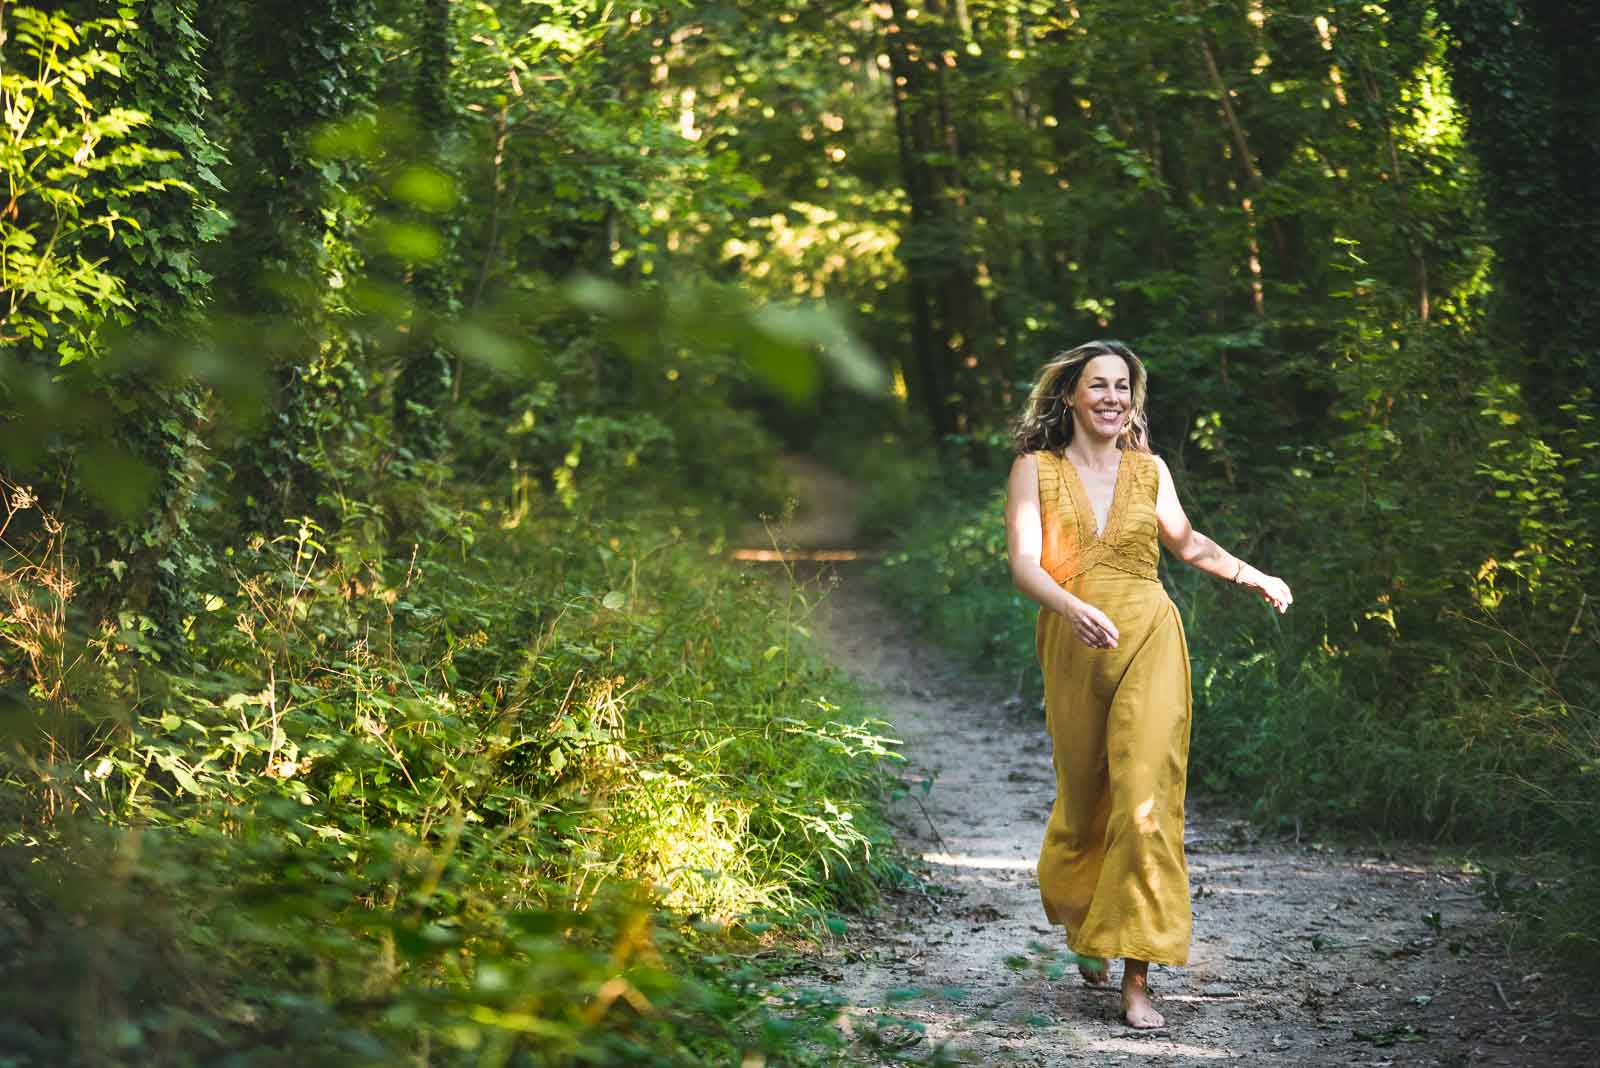 Outdoor Lifestyle Portrait Photography capturing movement and freedom, Magdalena Smolarska Personal Brand Photographer based UK (London & Brighton), travel Internationally too